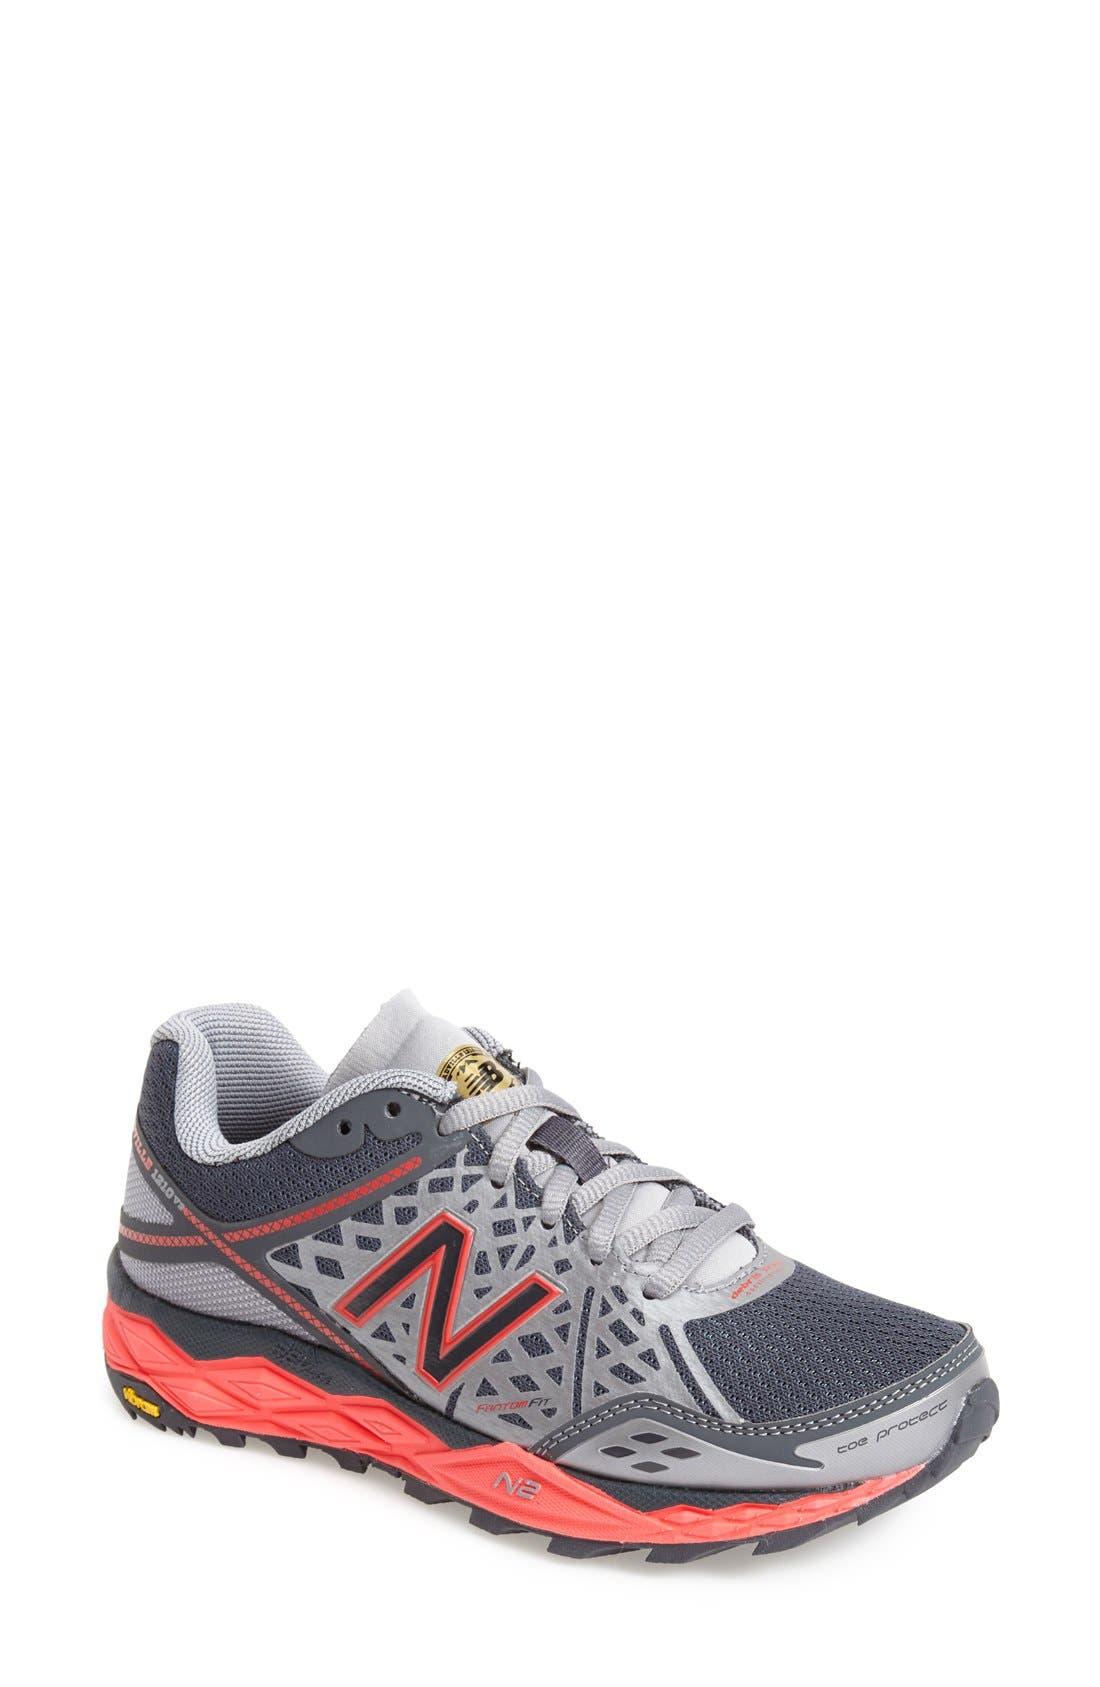 Main Image - New Balance '1210' Trail Running Shoe (Women)